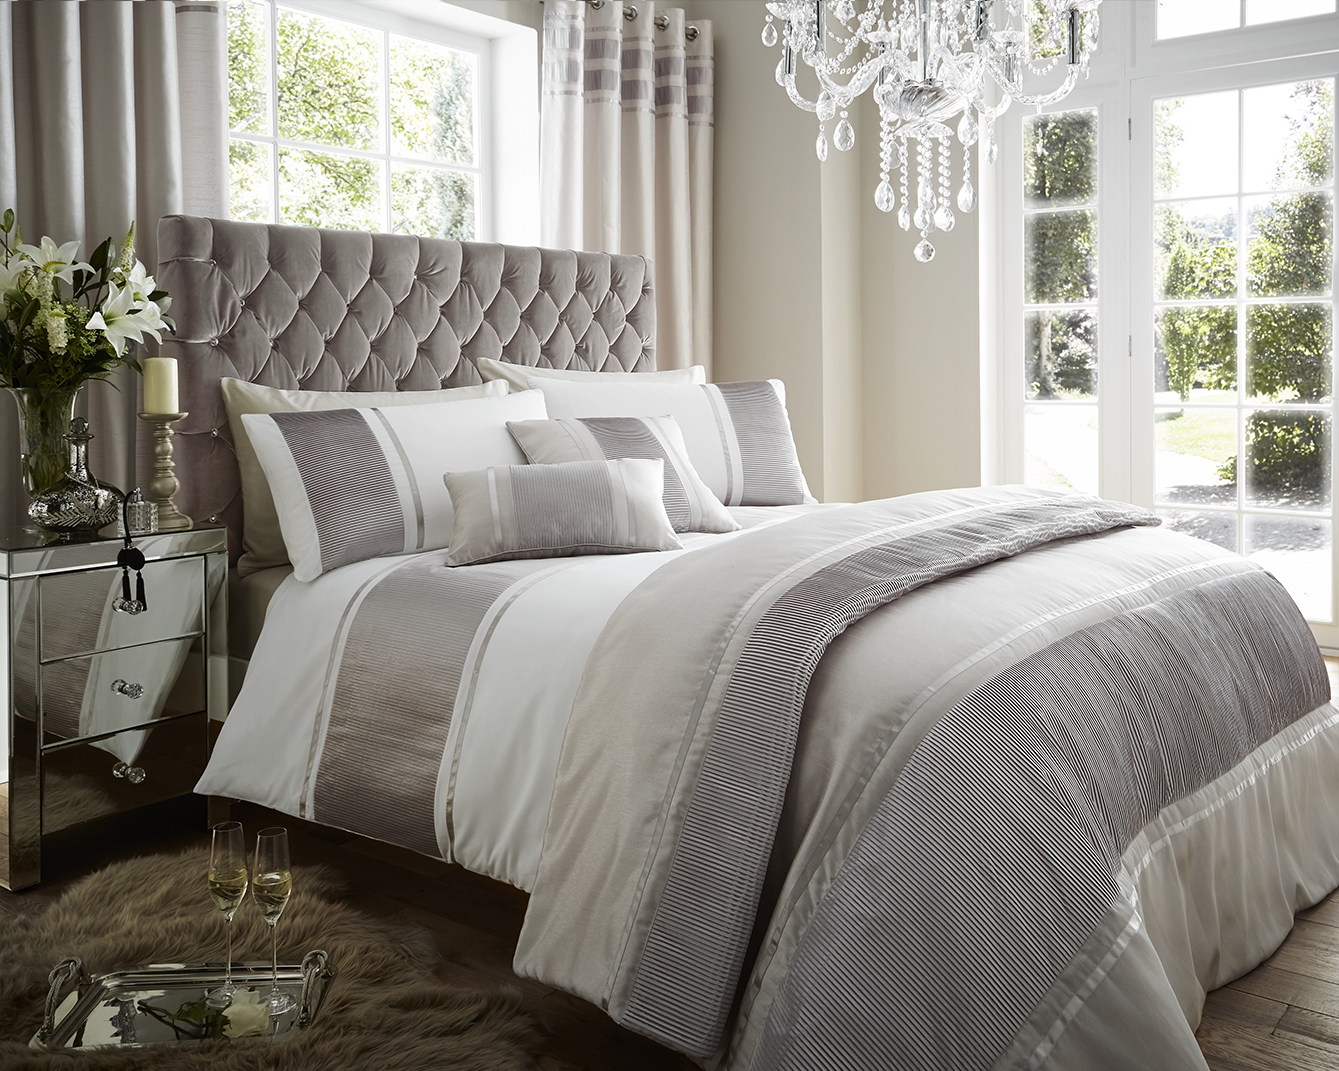 Detroit Collection Satin Pleated Bedding Set in White / Silver